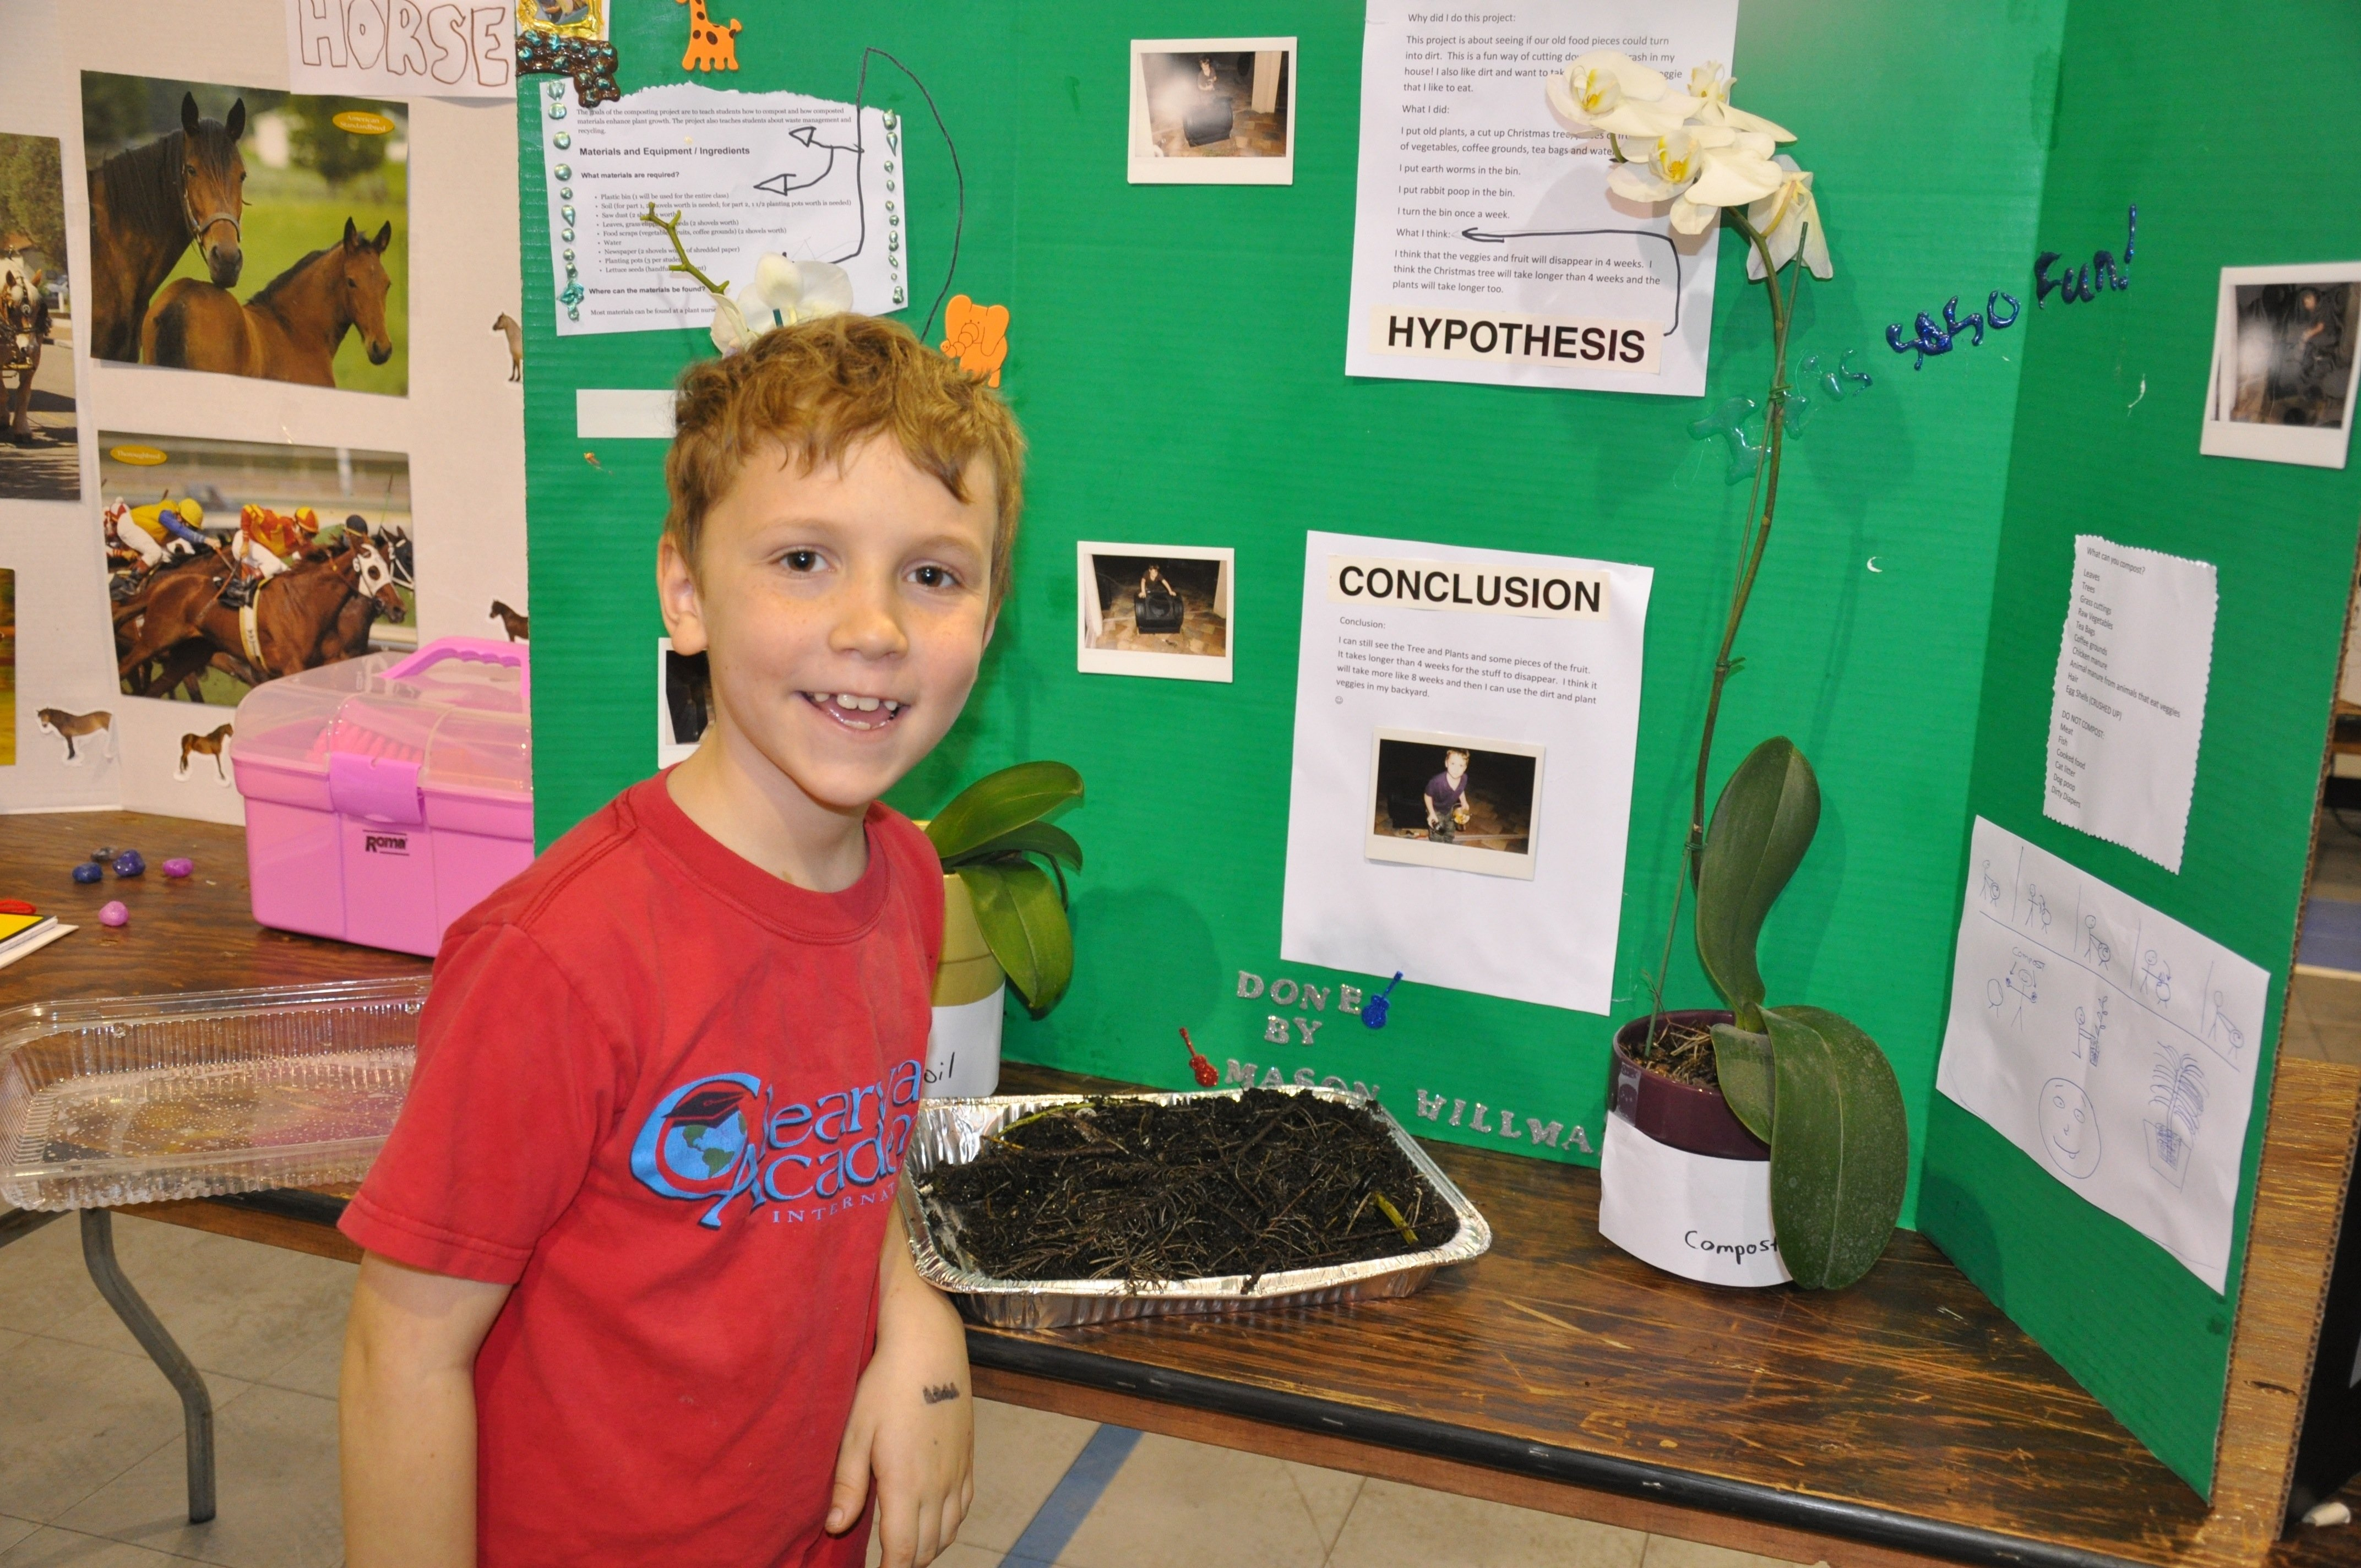 10 Most Recommended Science Fair Projects For 8Th Graders Winning Ideas fun 8th grade science fair projects custom paper writing service 34